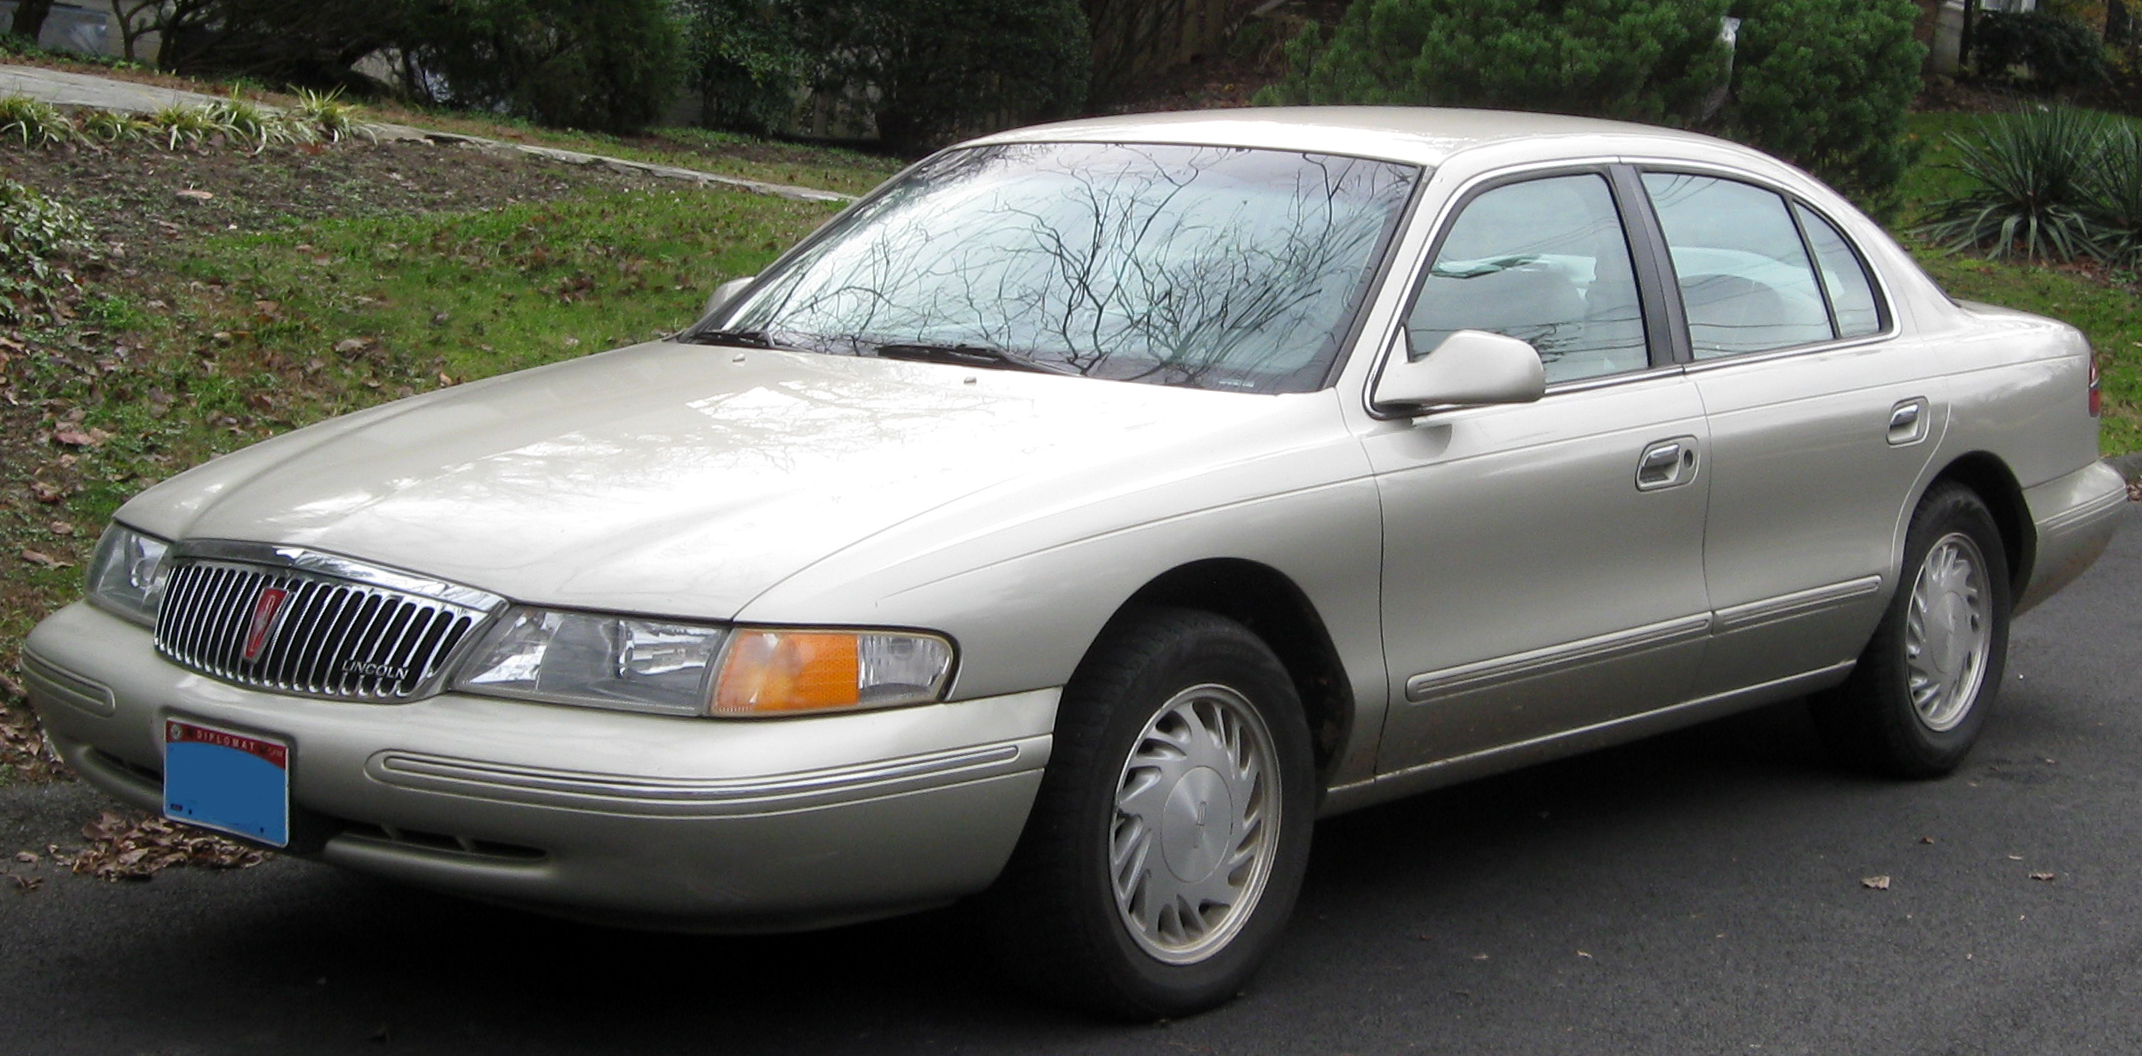 1996 Lincoln Continental Image 10